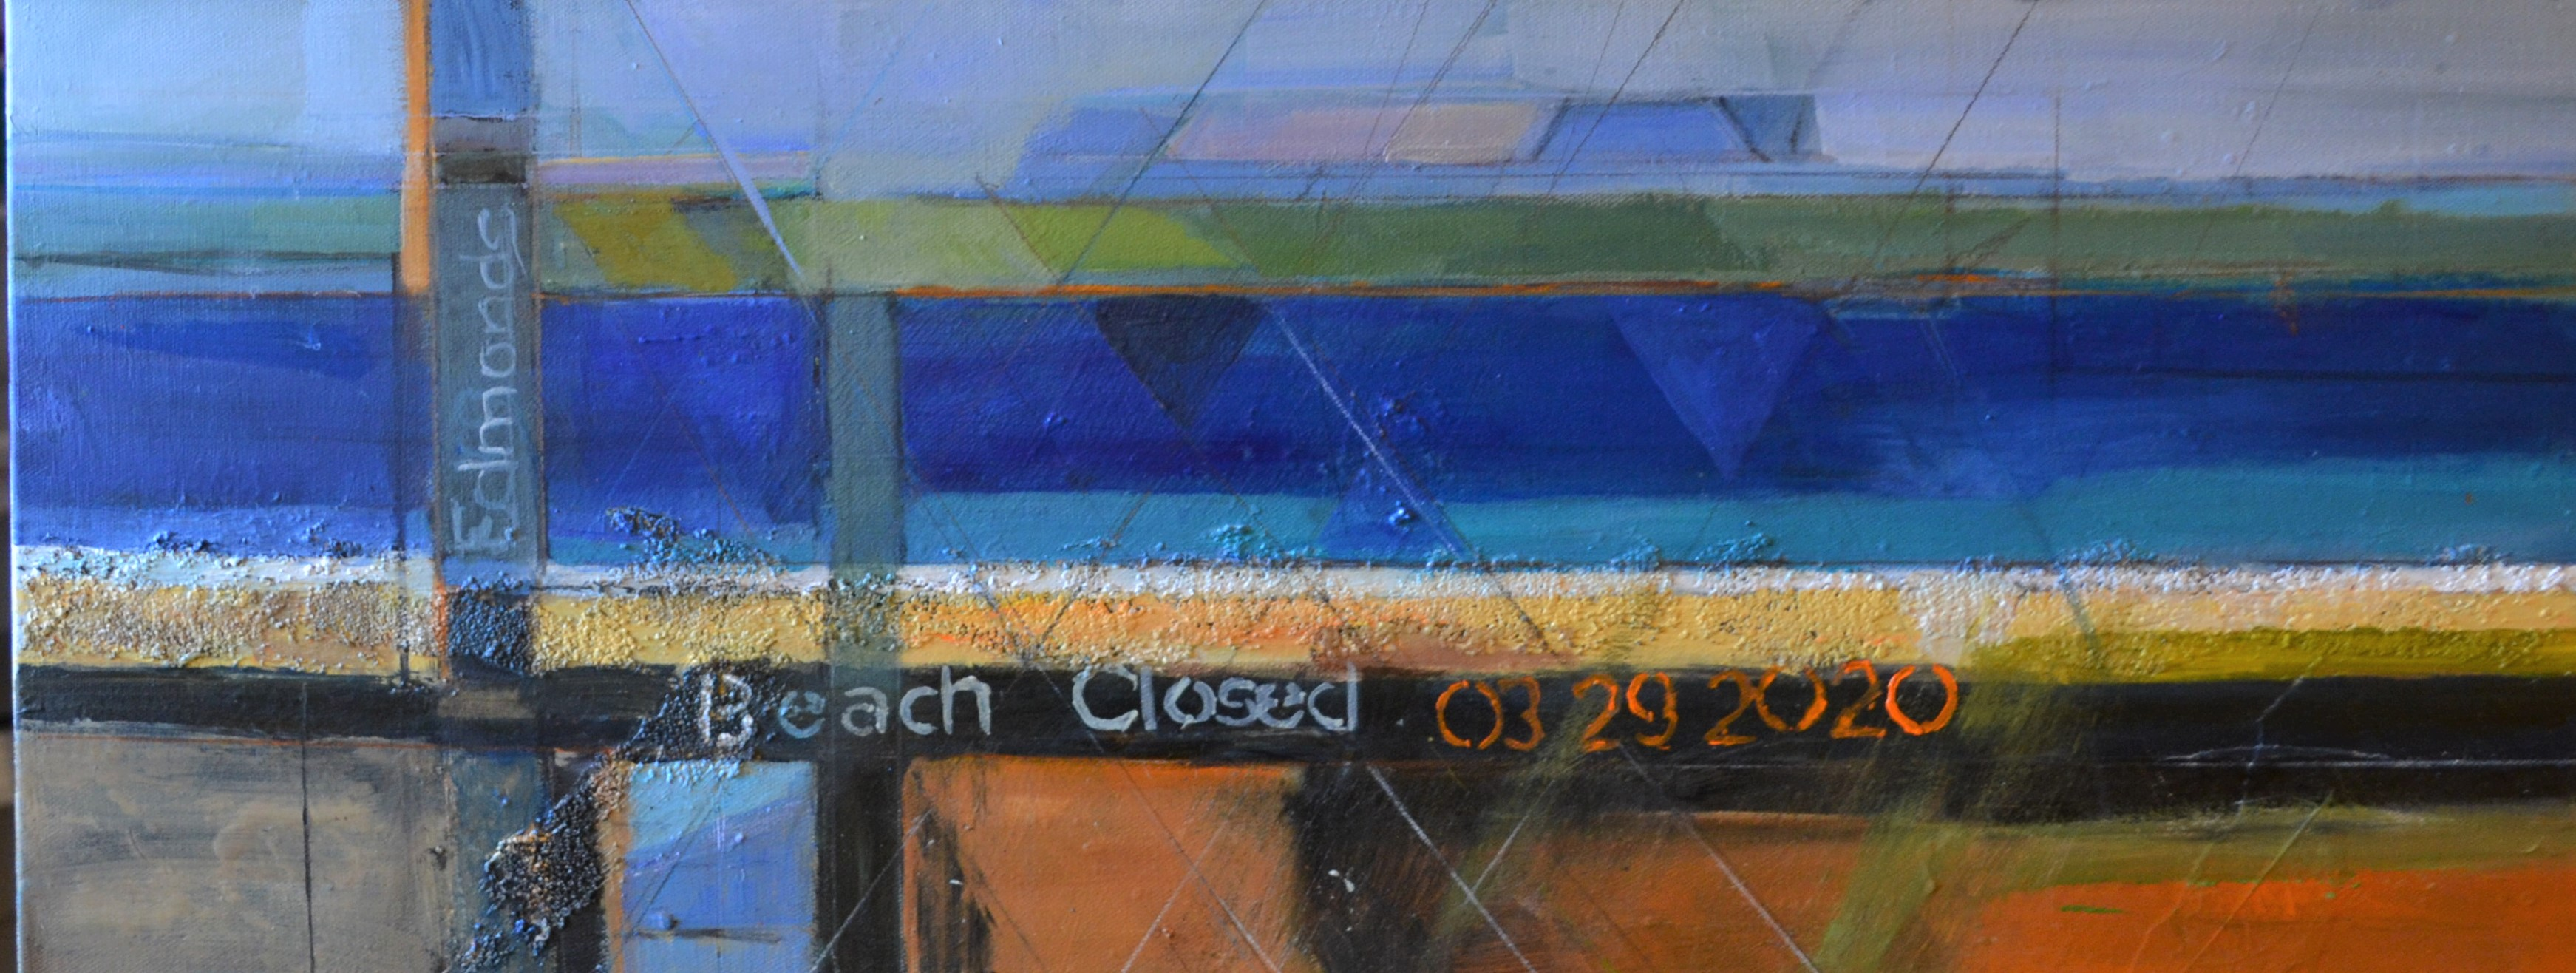 Beach Closed by Delores Haugland, Acrylic